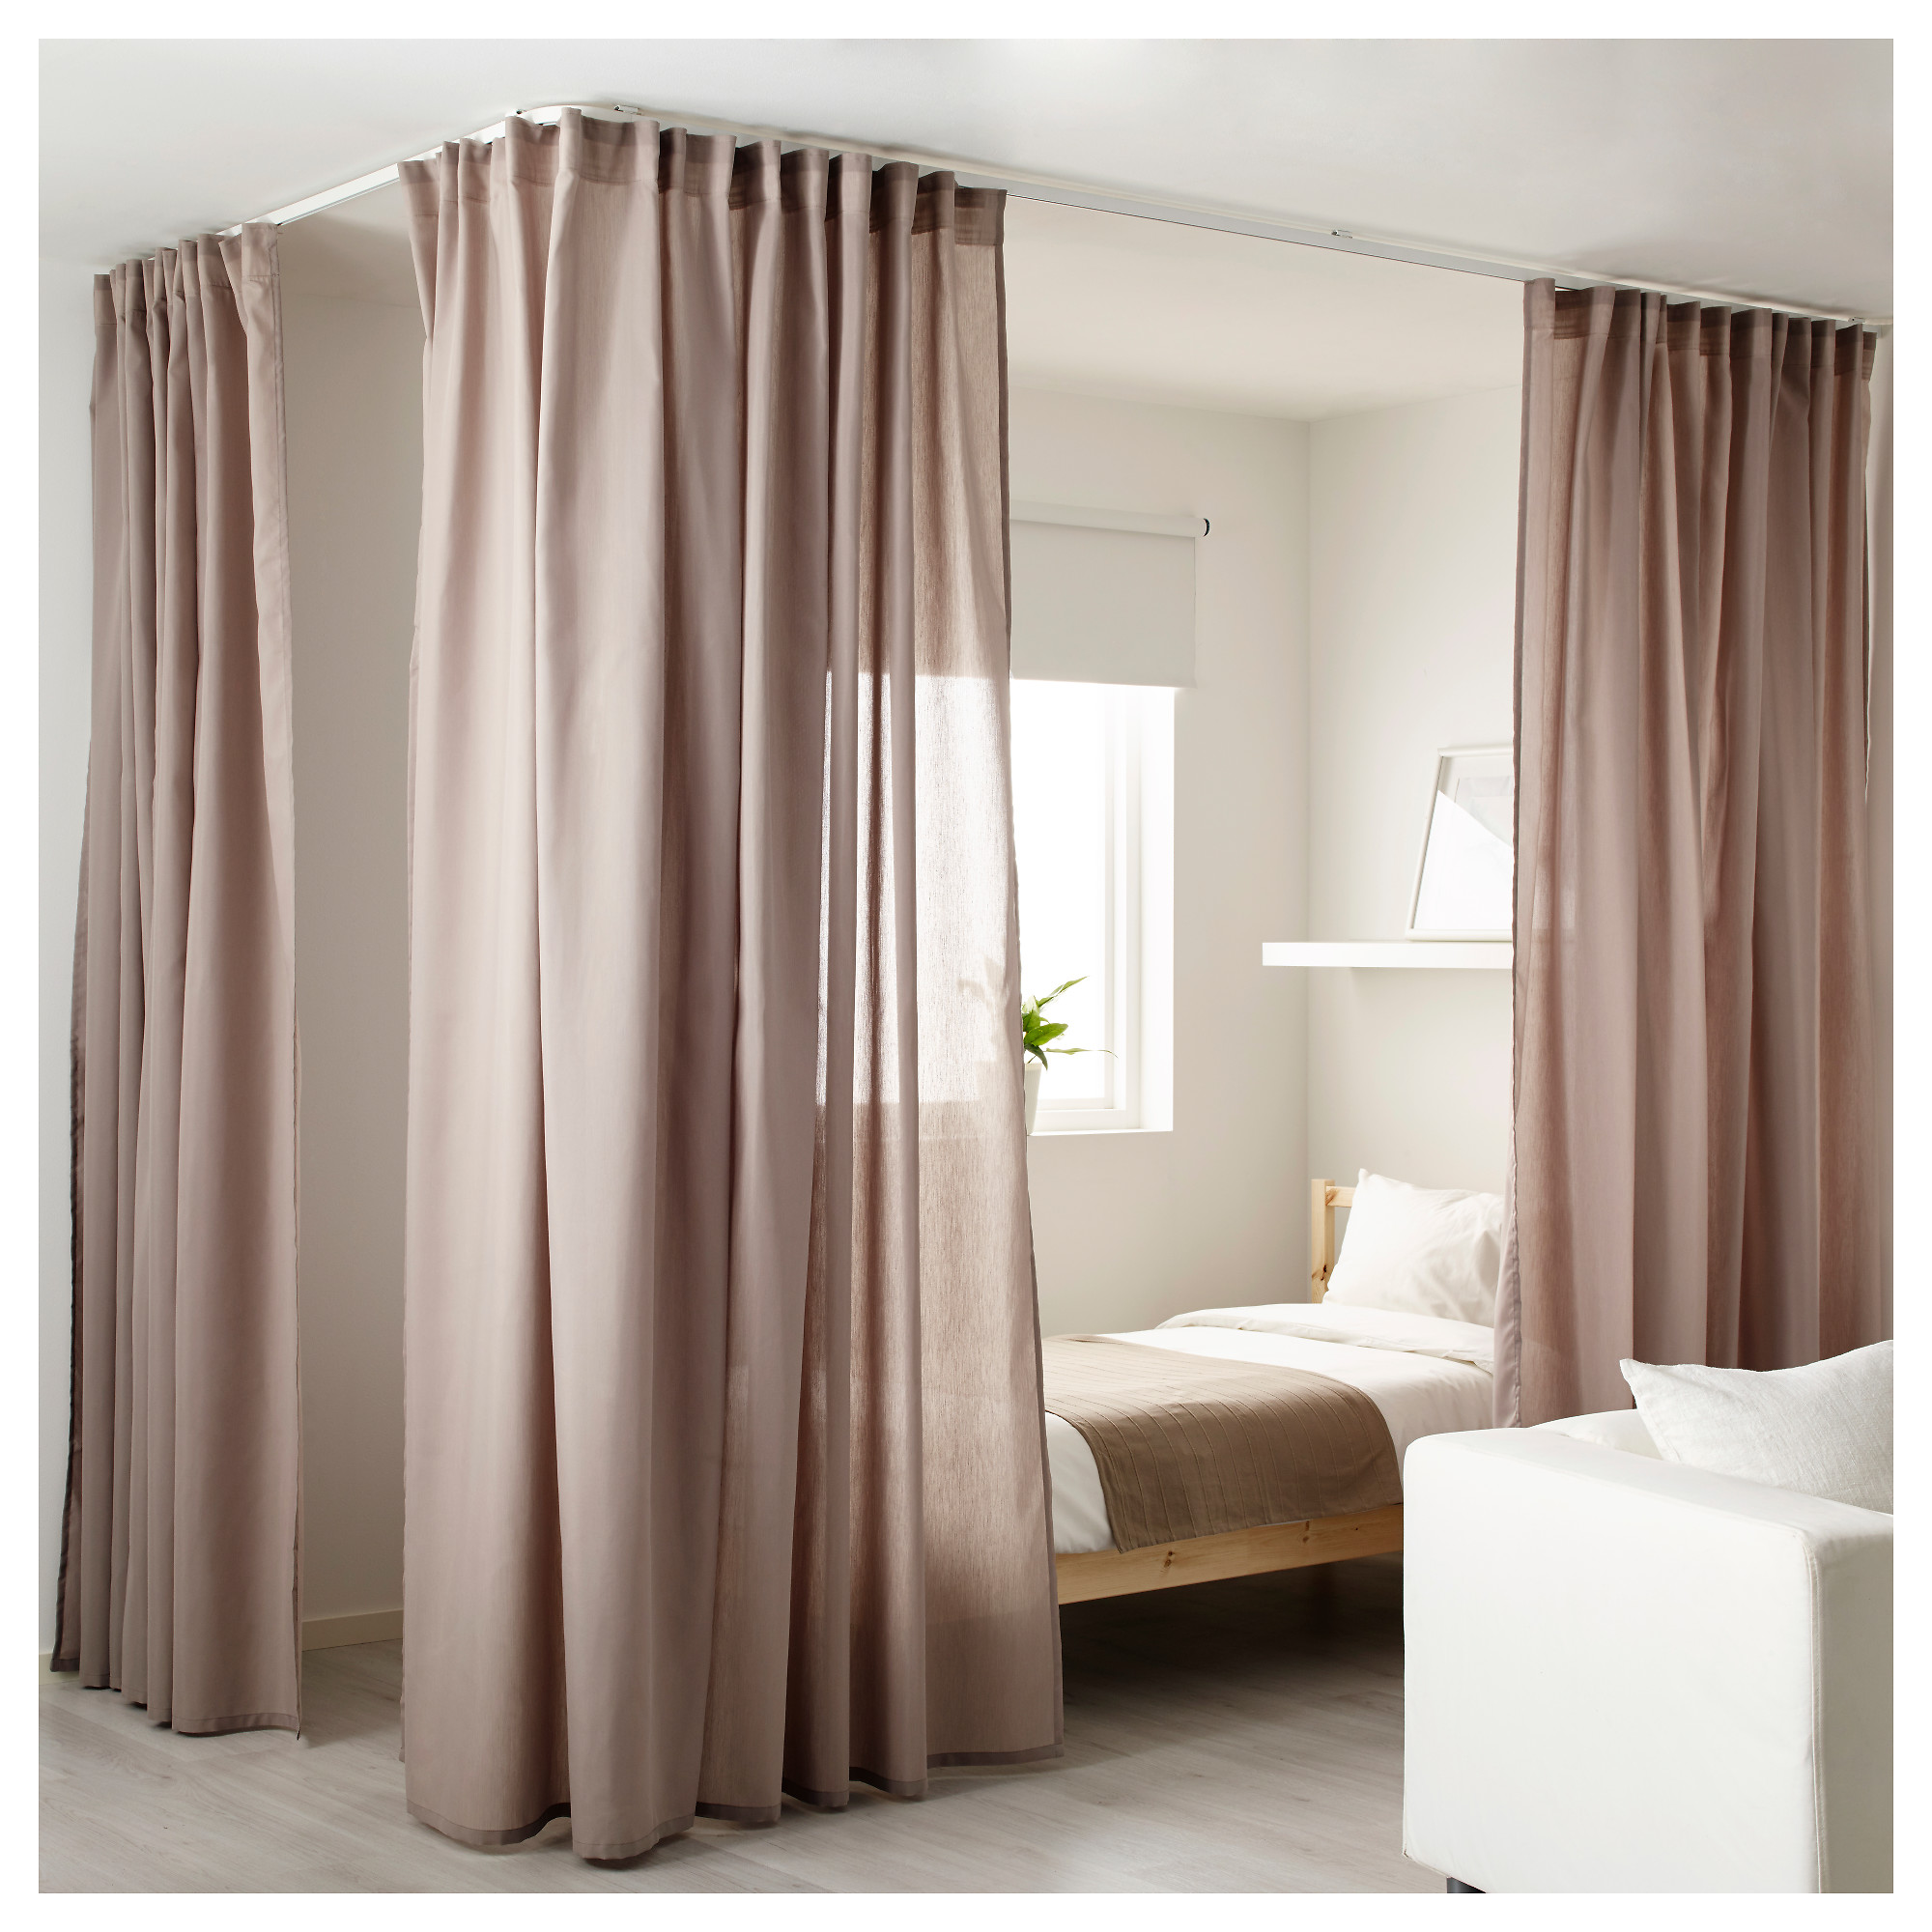 Enchanting Room Divider Curtains for Your Space Room Ideas: Ikea Room Divider Curtain Panels | Panel Curtains Room Divider | Room Divider Curtains